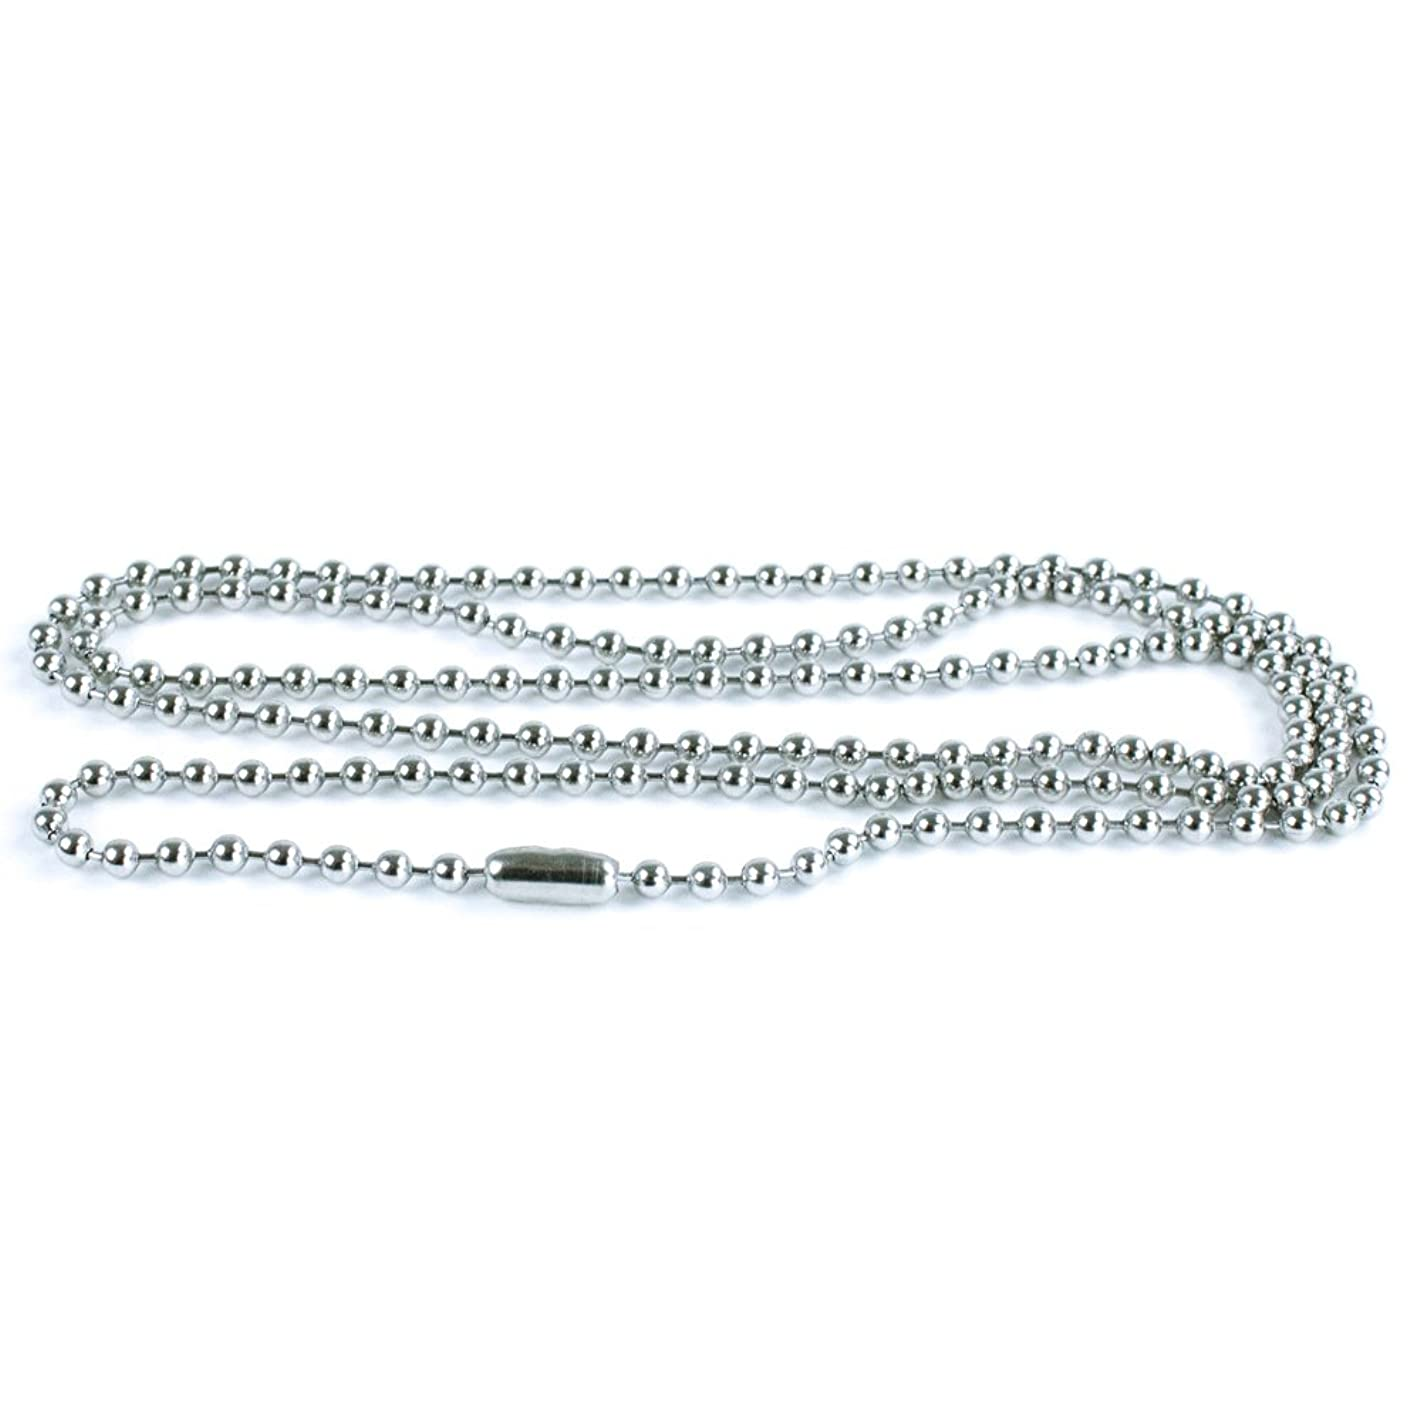 50 Pack Silver Ball Chain Dog Tag Necklace – Paracord Planet 24 Inch Long 2.4mm Bead Size – Adjustable Metal Bead Chain Matching Connector Jewelry